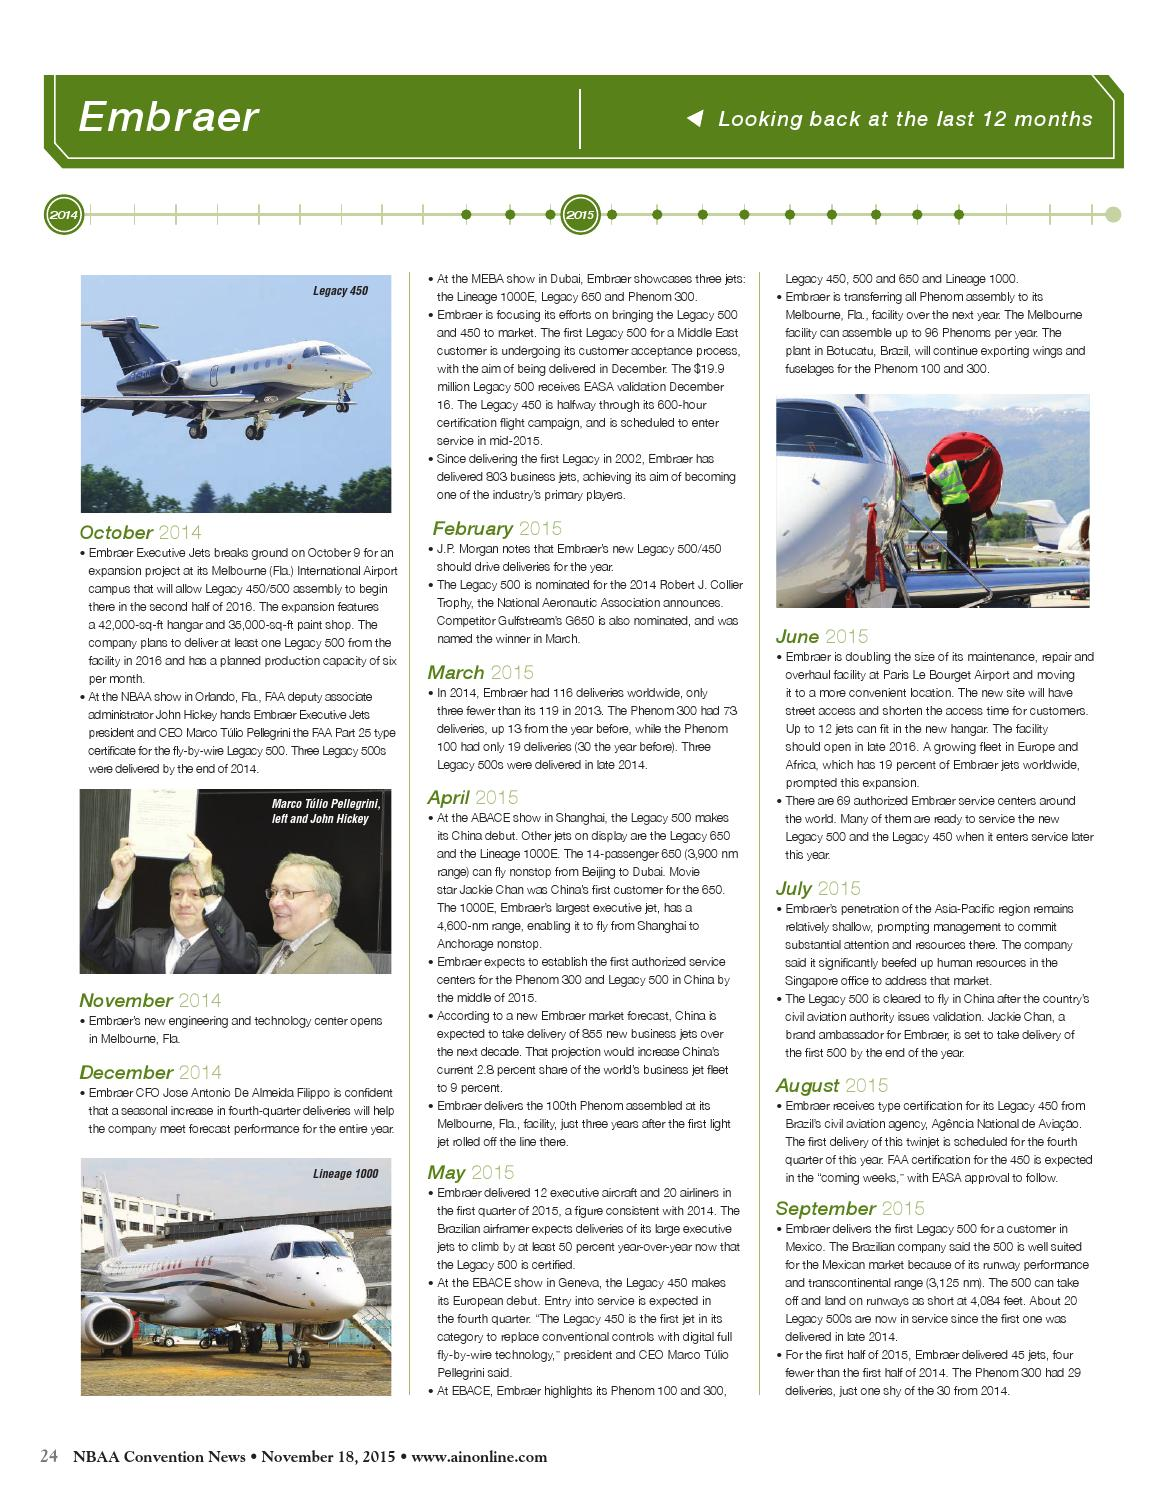 NBAA Convention News 11-18-15 by Aviation International News